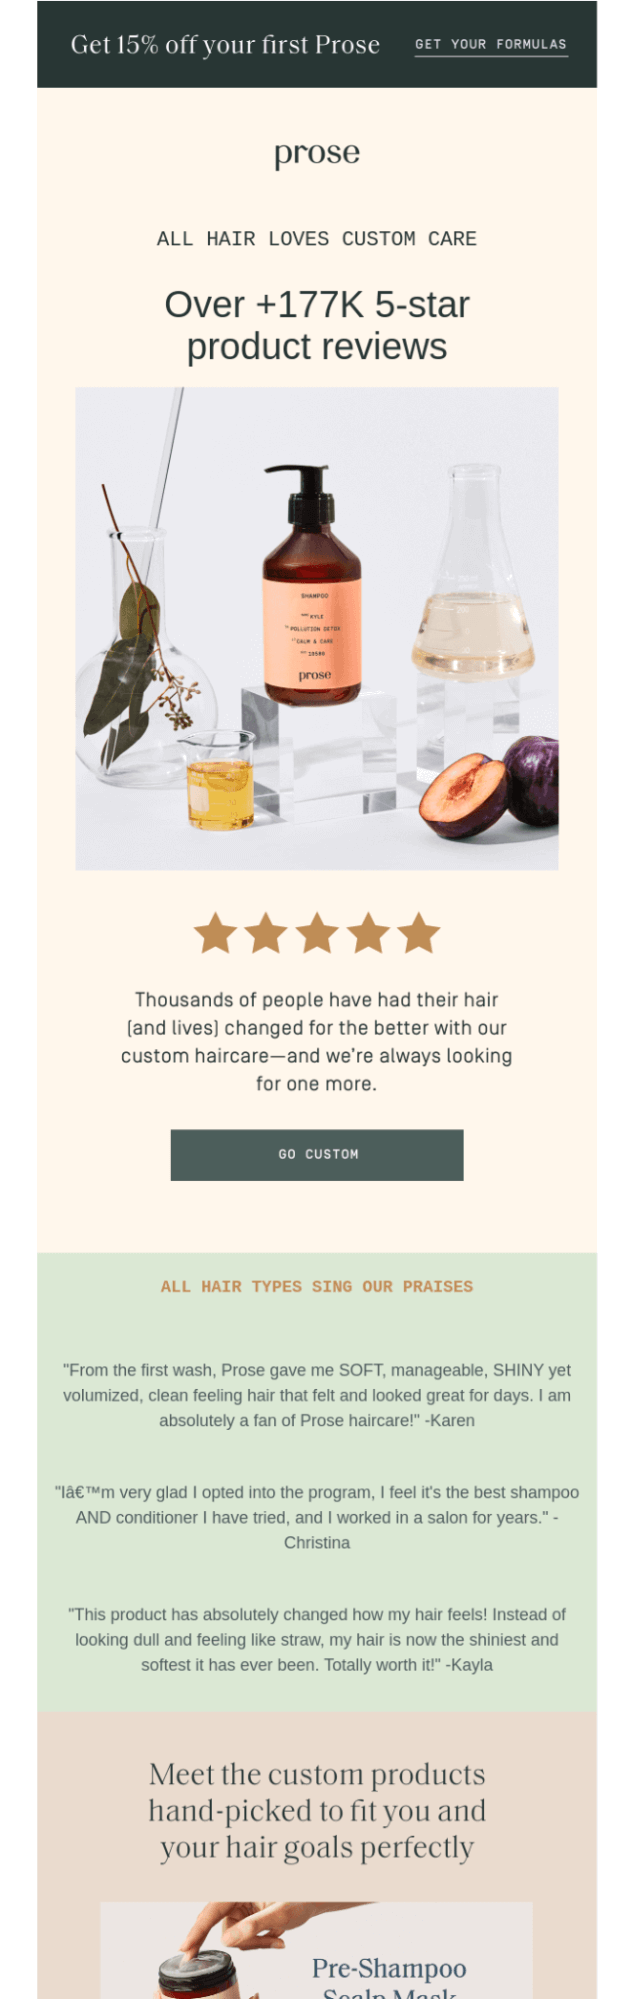 Customer reviews in the promo email